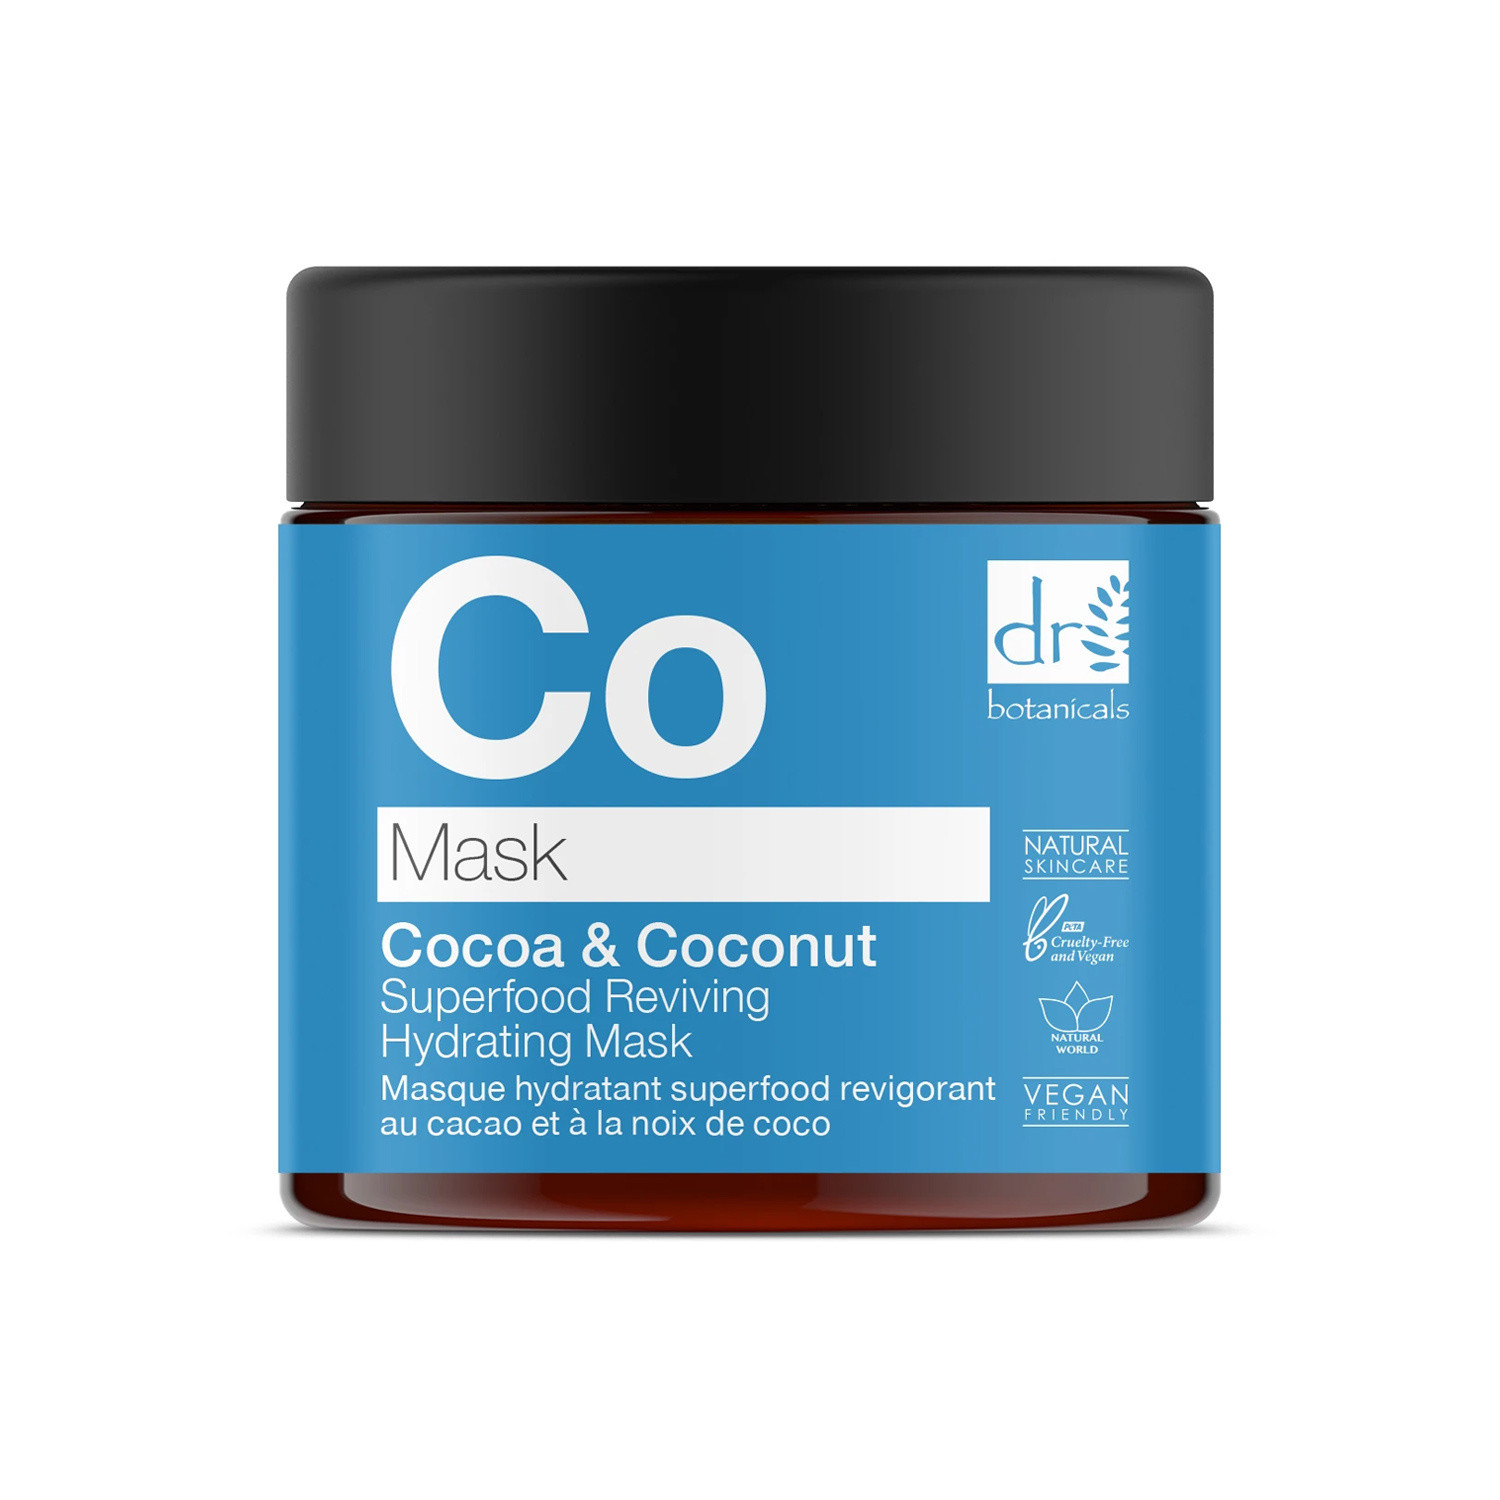 Dr Botanicals Apothecary Cocoa & Coconut Superfood Reviving Hydrating Mask